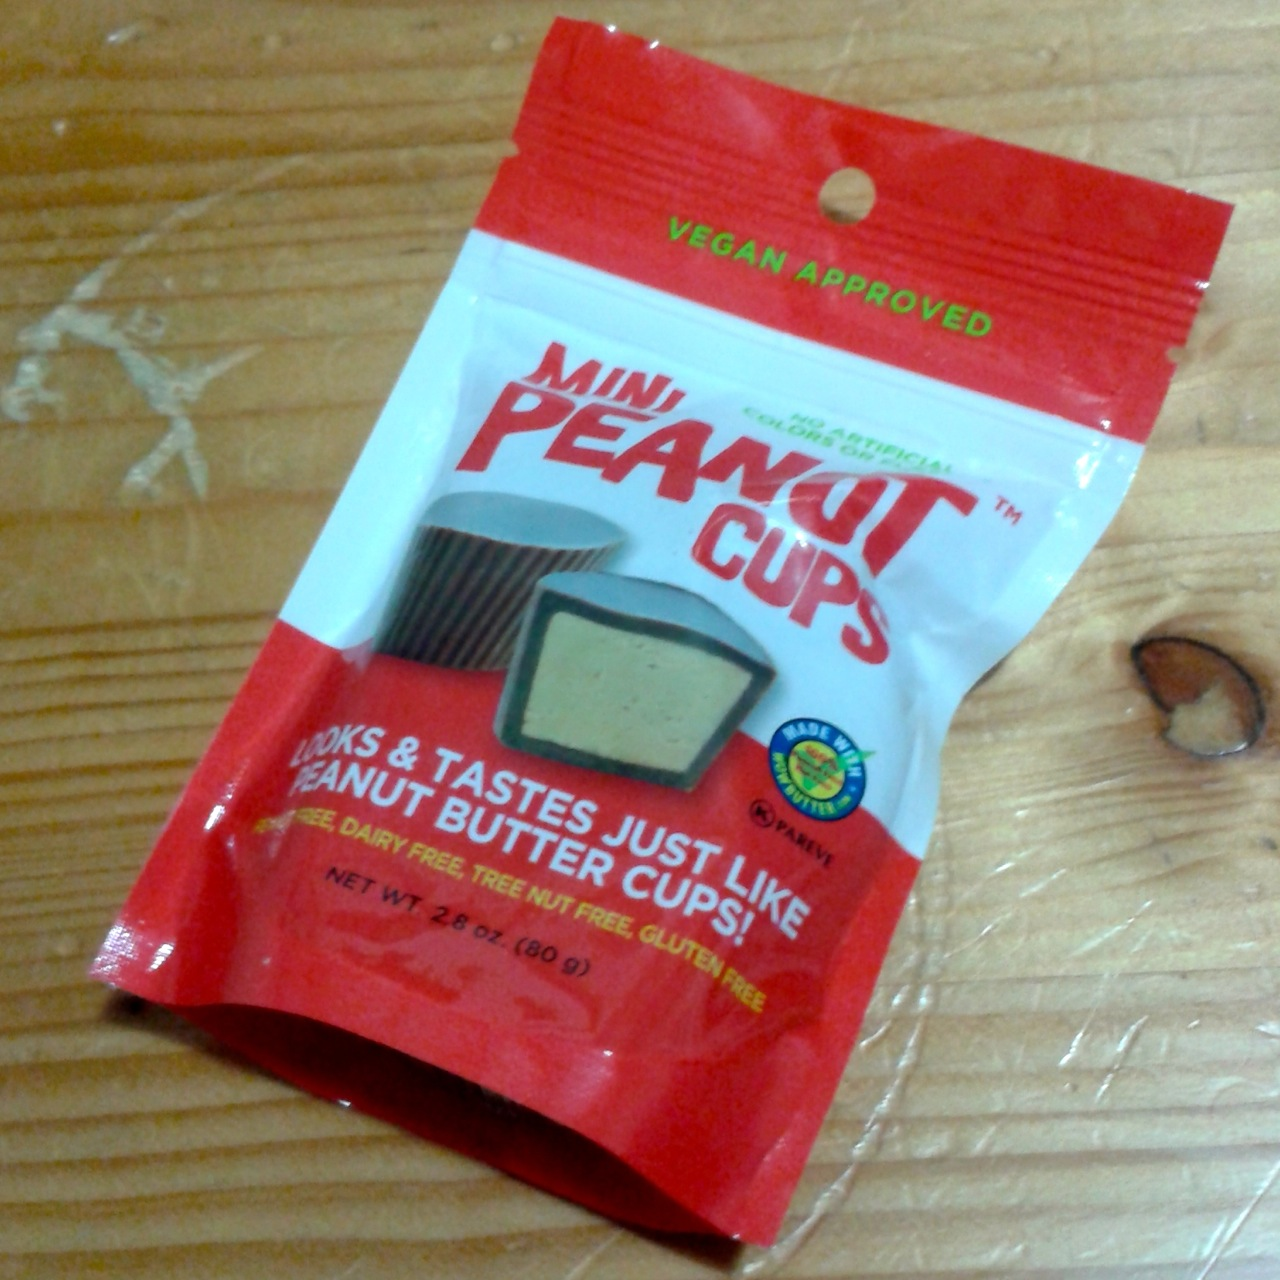 https://i0.wp.com/fatgayvegan.com/wp-content/uploads/2014/10/mini-peanot-cups.jpg?fit=1280%2C1280